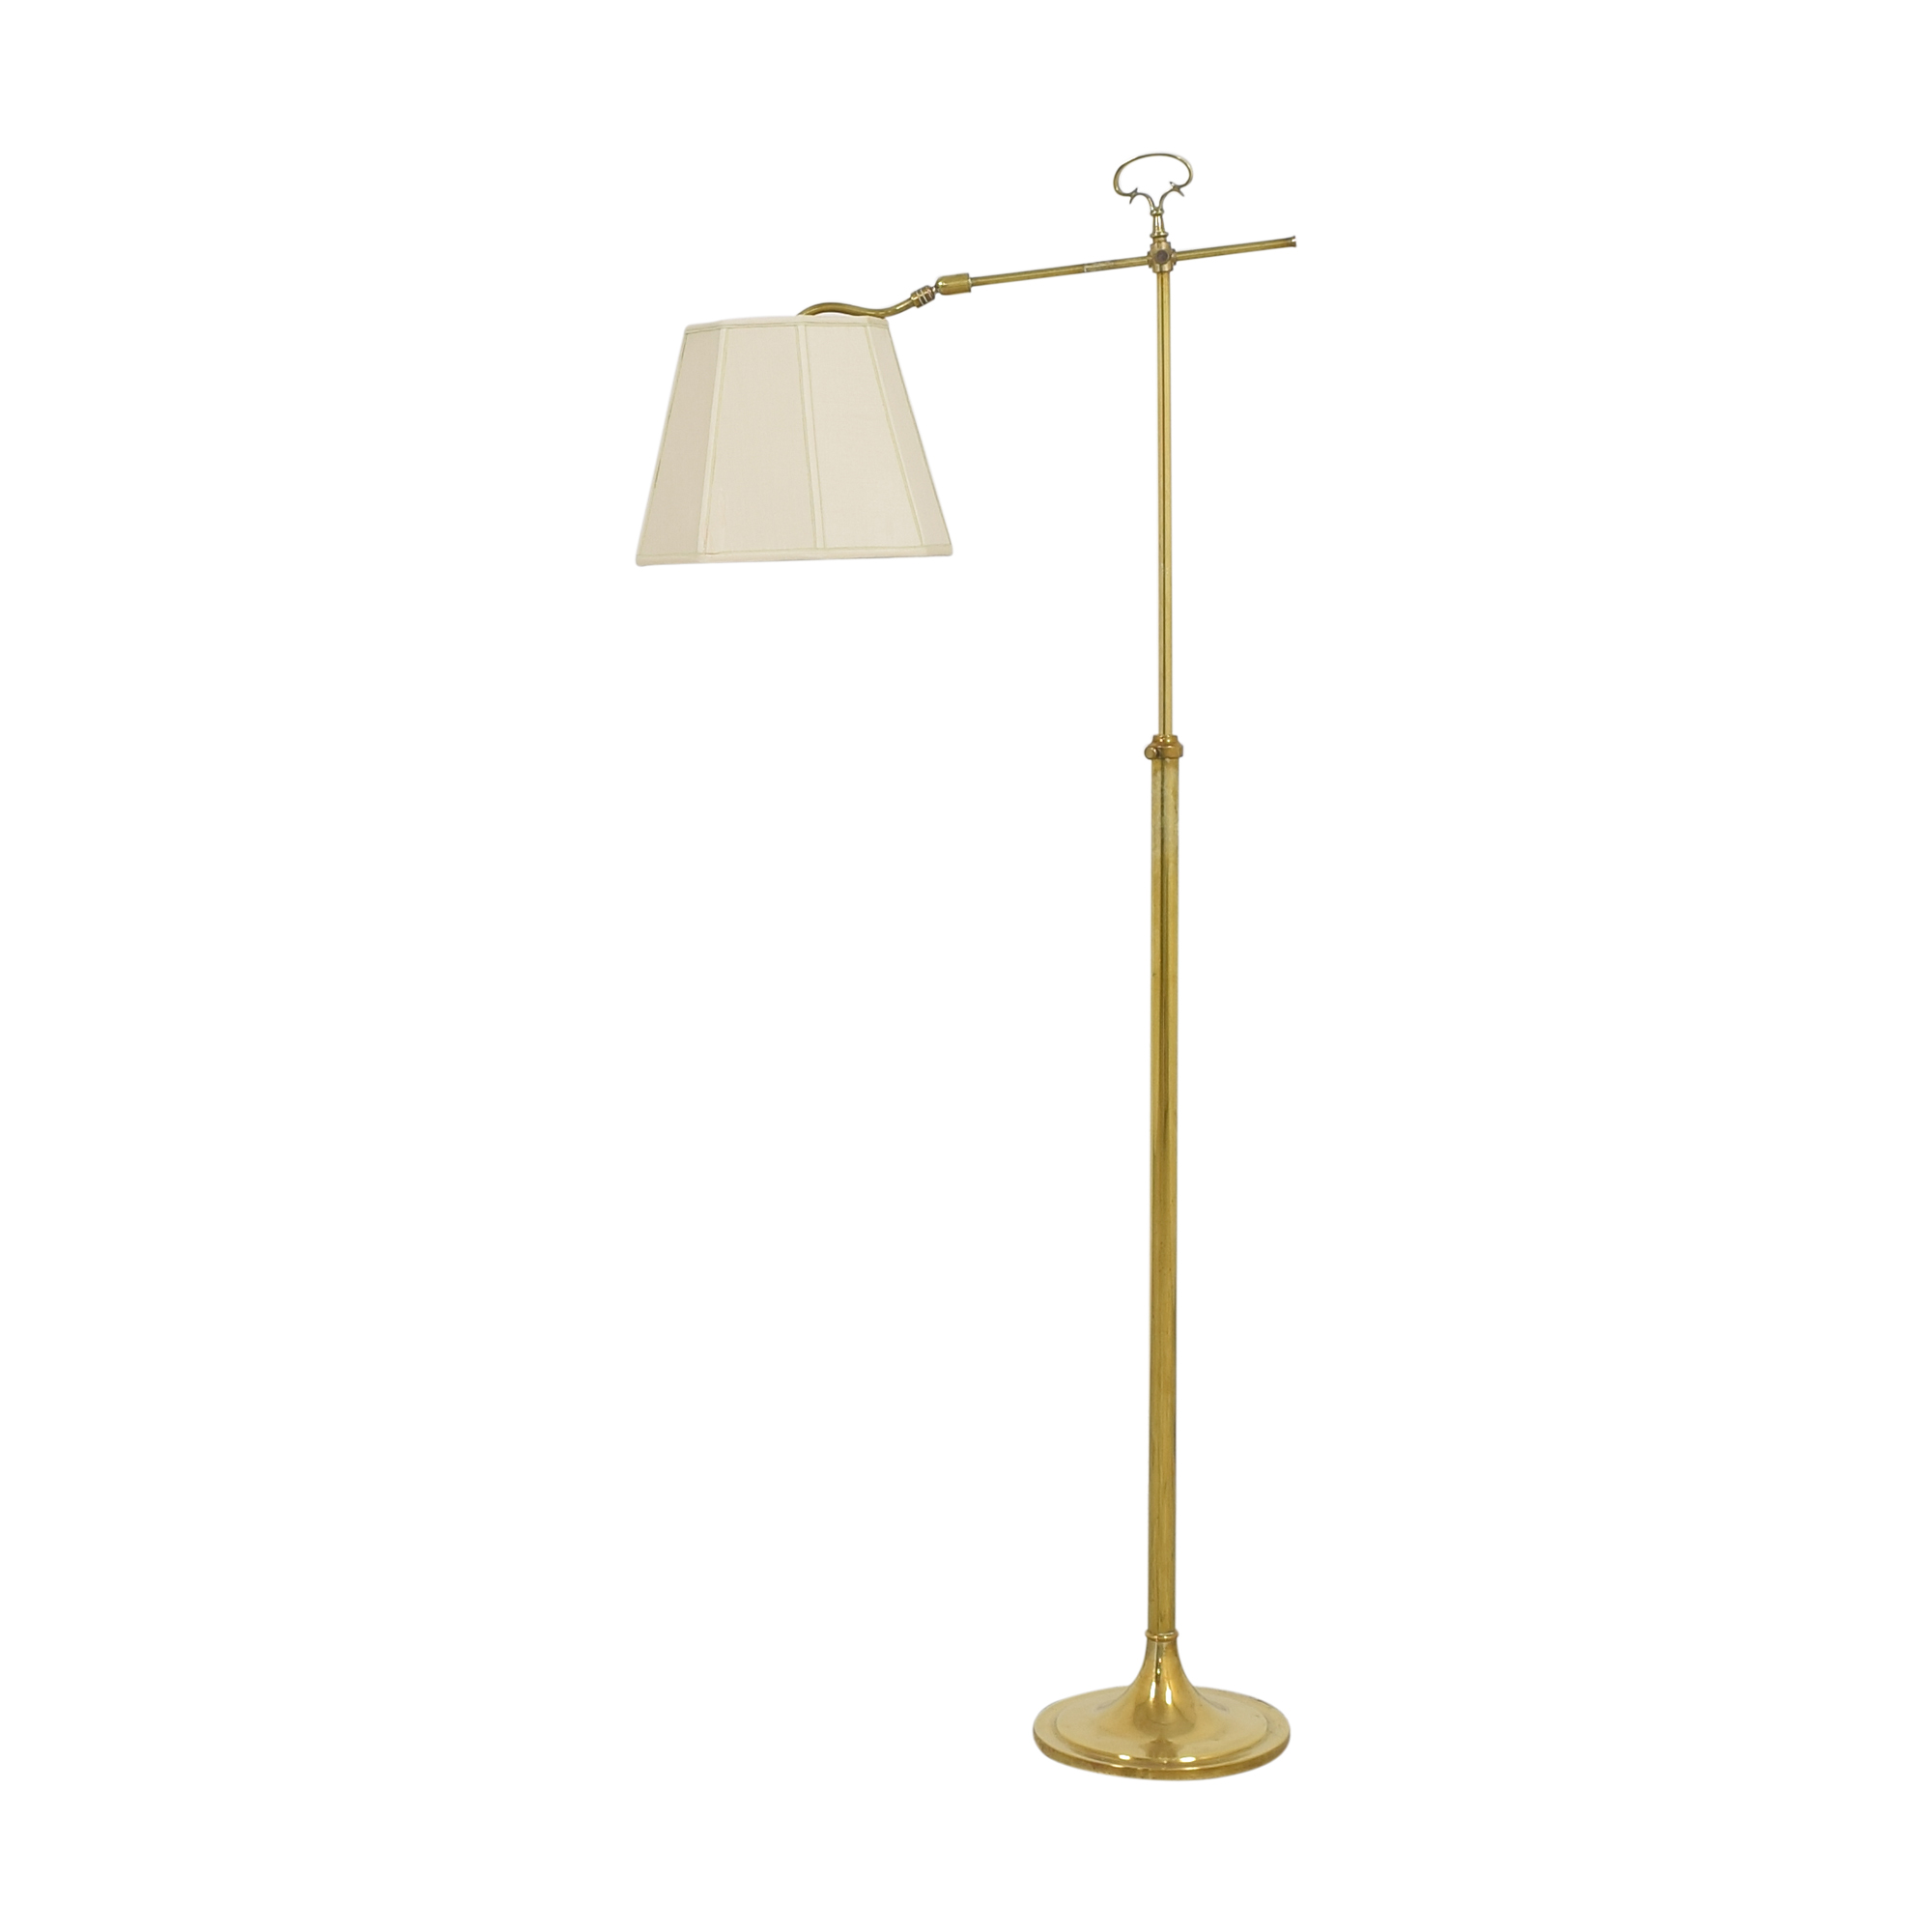 Vintage Adjustable Floor Lamp price